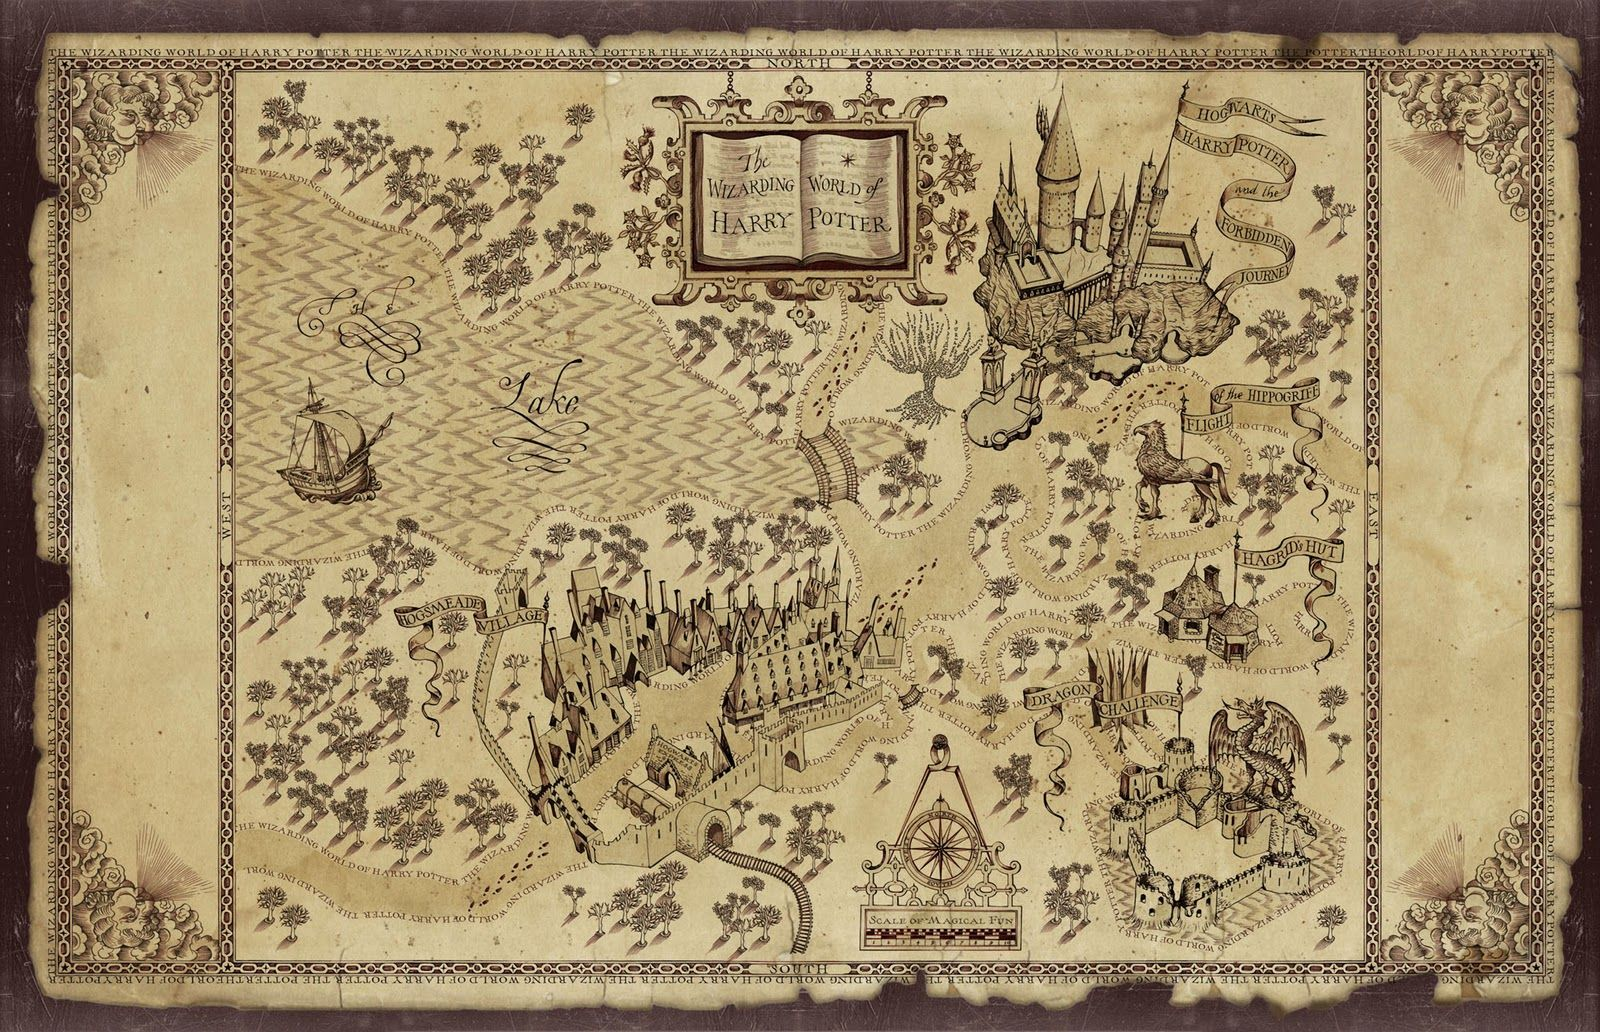 The Wizarding World of Harry Potter map.